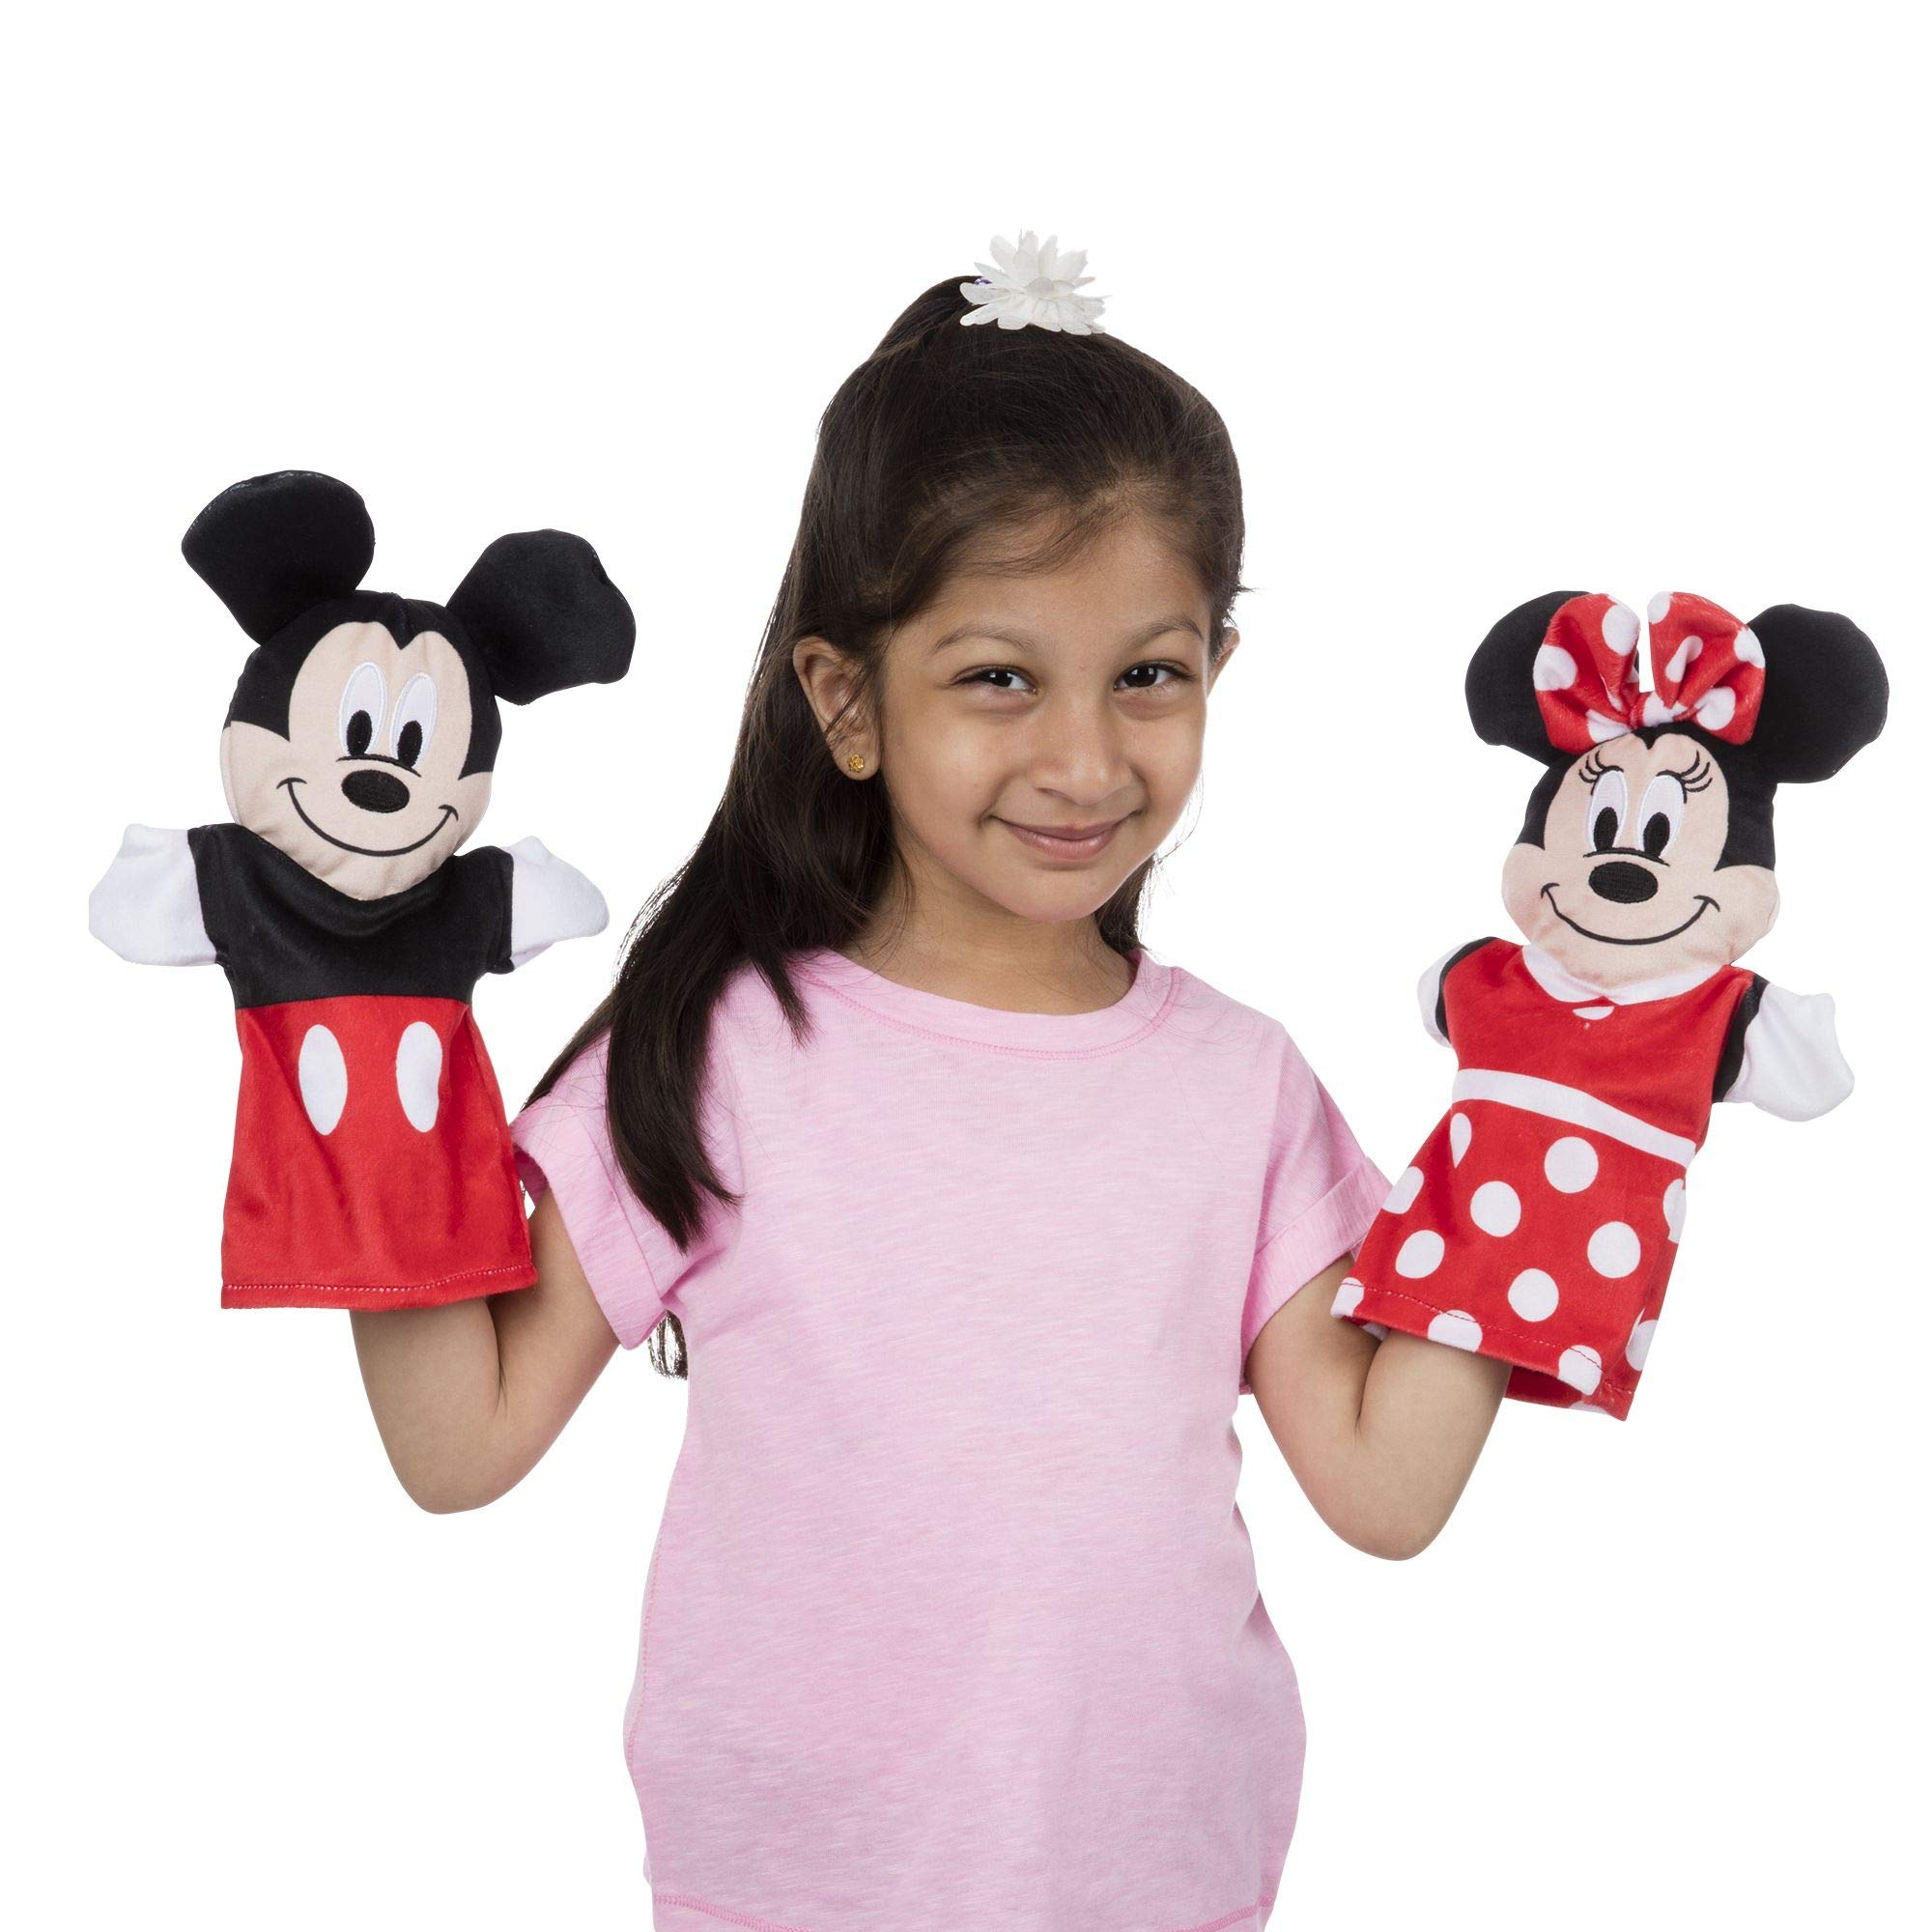 "Melissa & Doug Mickey Mouse & Friends Hand Puppets; Puppet Sets; Mickey, Minnie, Donald, and Goofy; Soft Plush Material; Set of 4; 9.5"" H x 14.2"" W x 2.1"" L by Melissa & Doug (Image #2)"